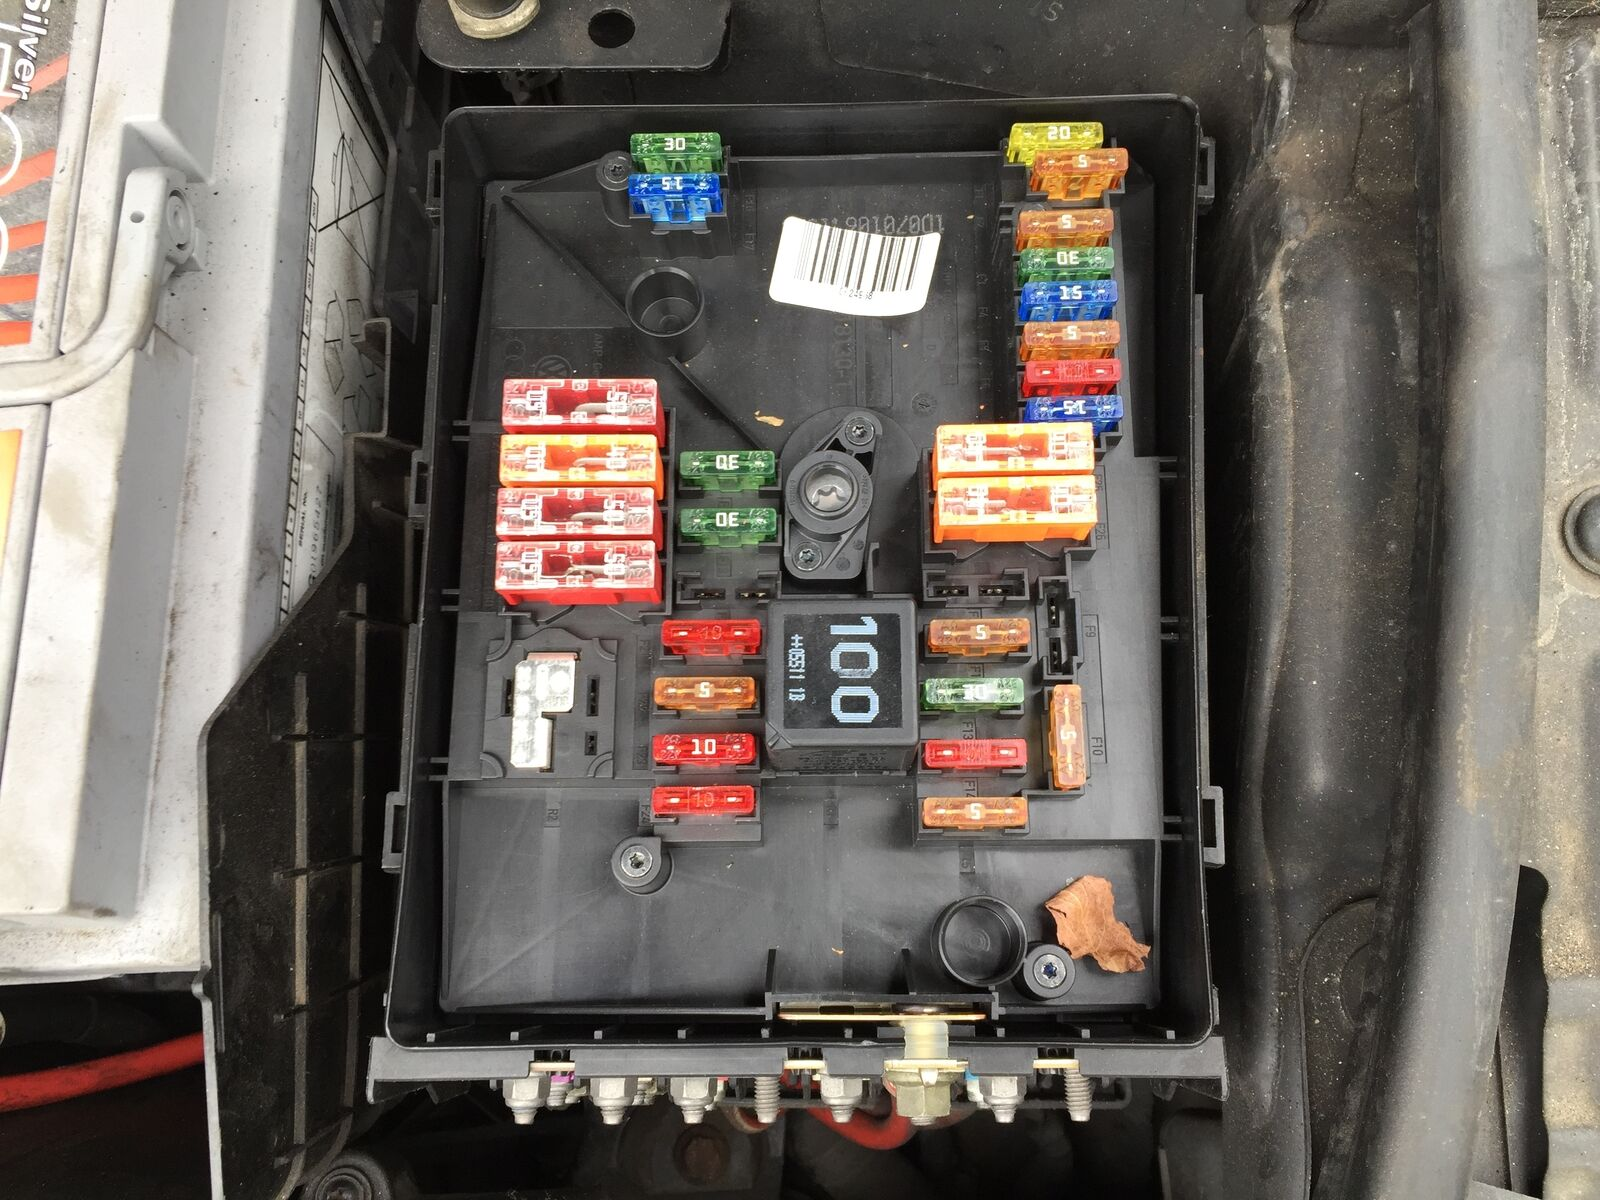 2008 audi a3 fuse box wiring diagram will be a thing u2022 rh  exploreandmore co uk 2007 VW Passat Fuse Box Diagram 2009 Audi Q5 Wiring- Diagram